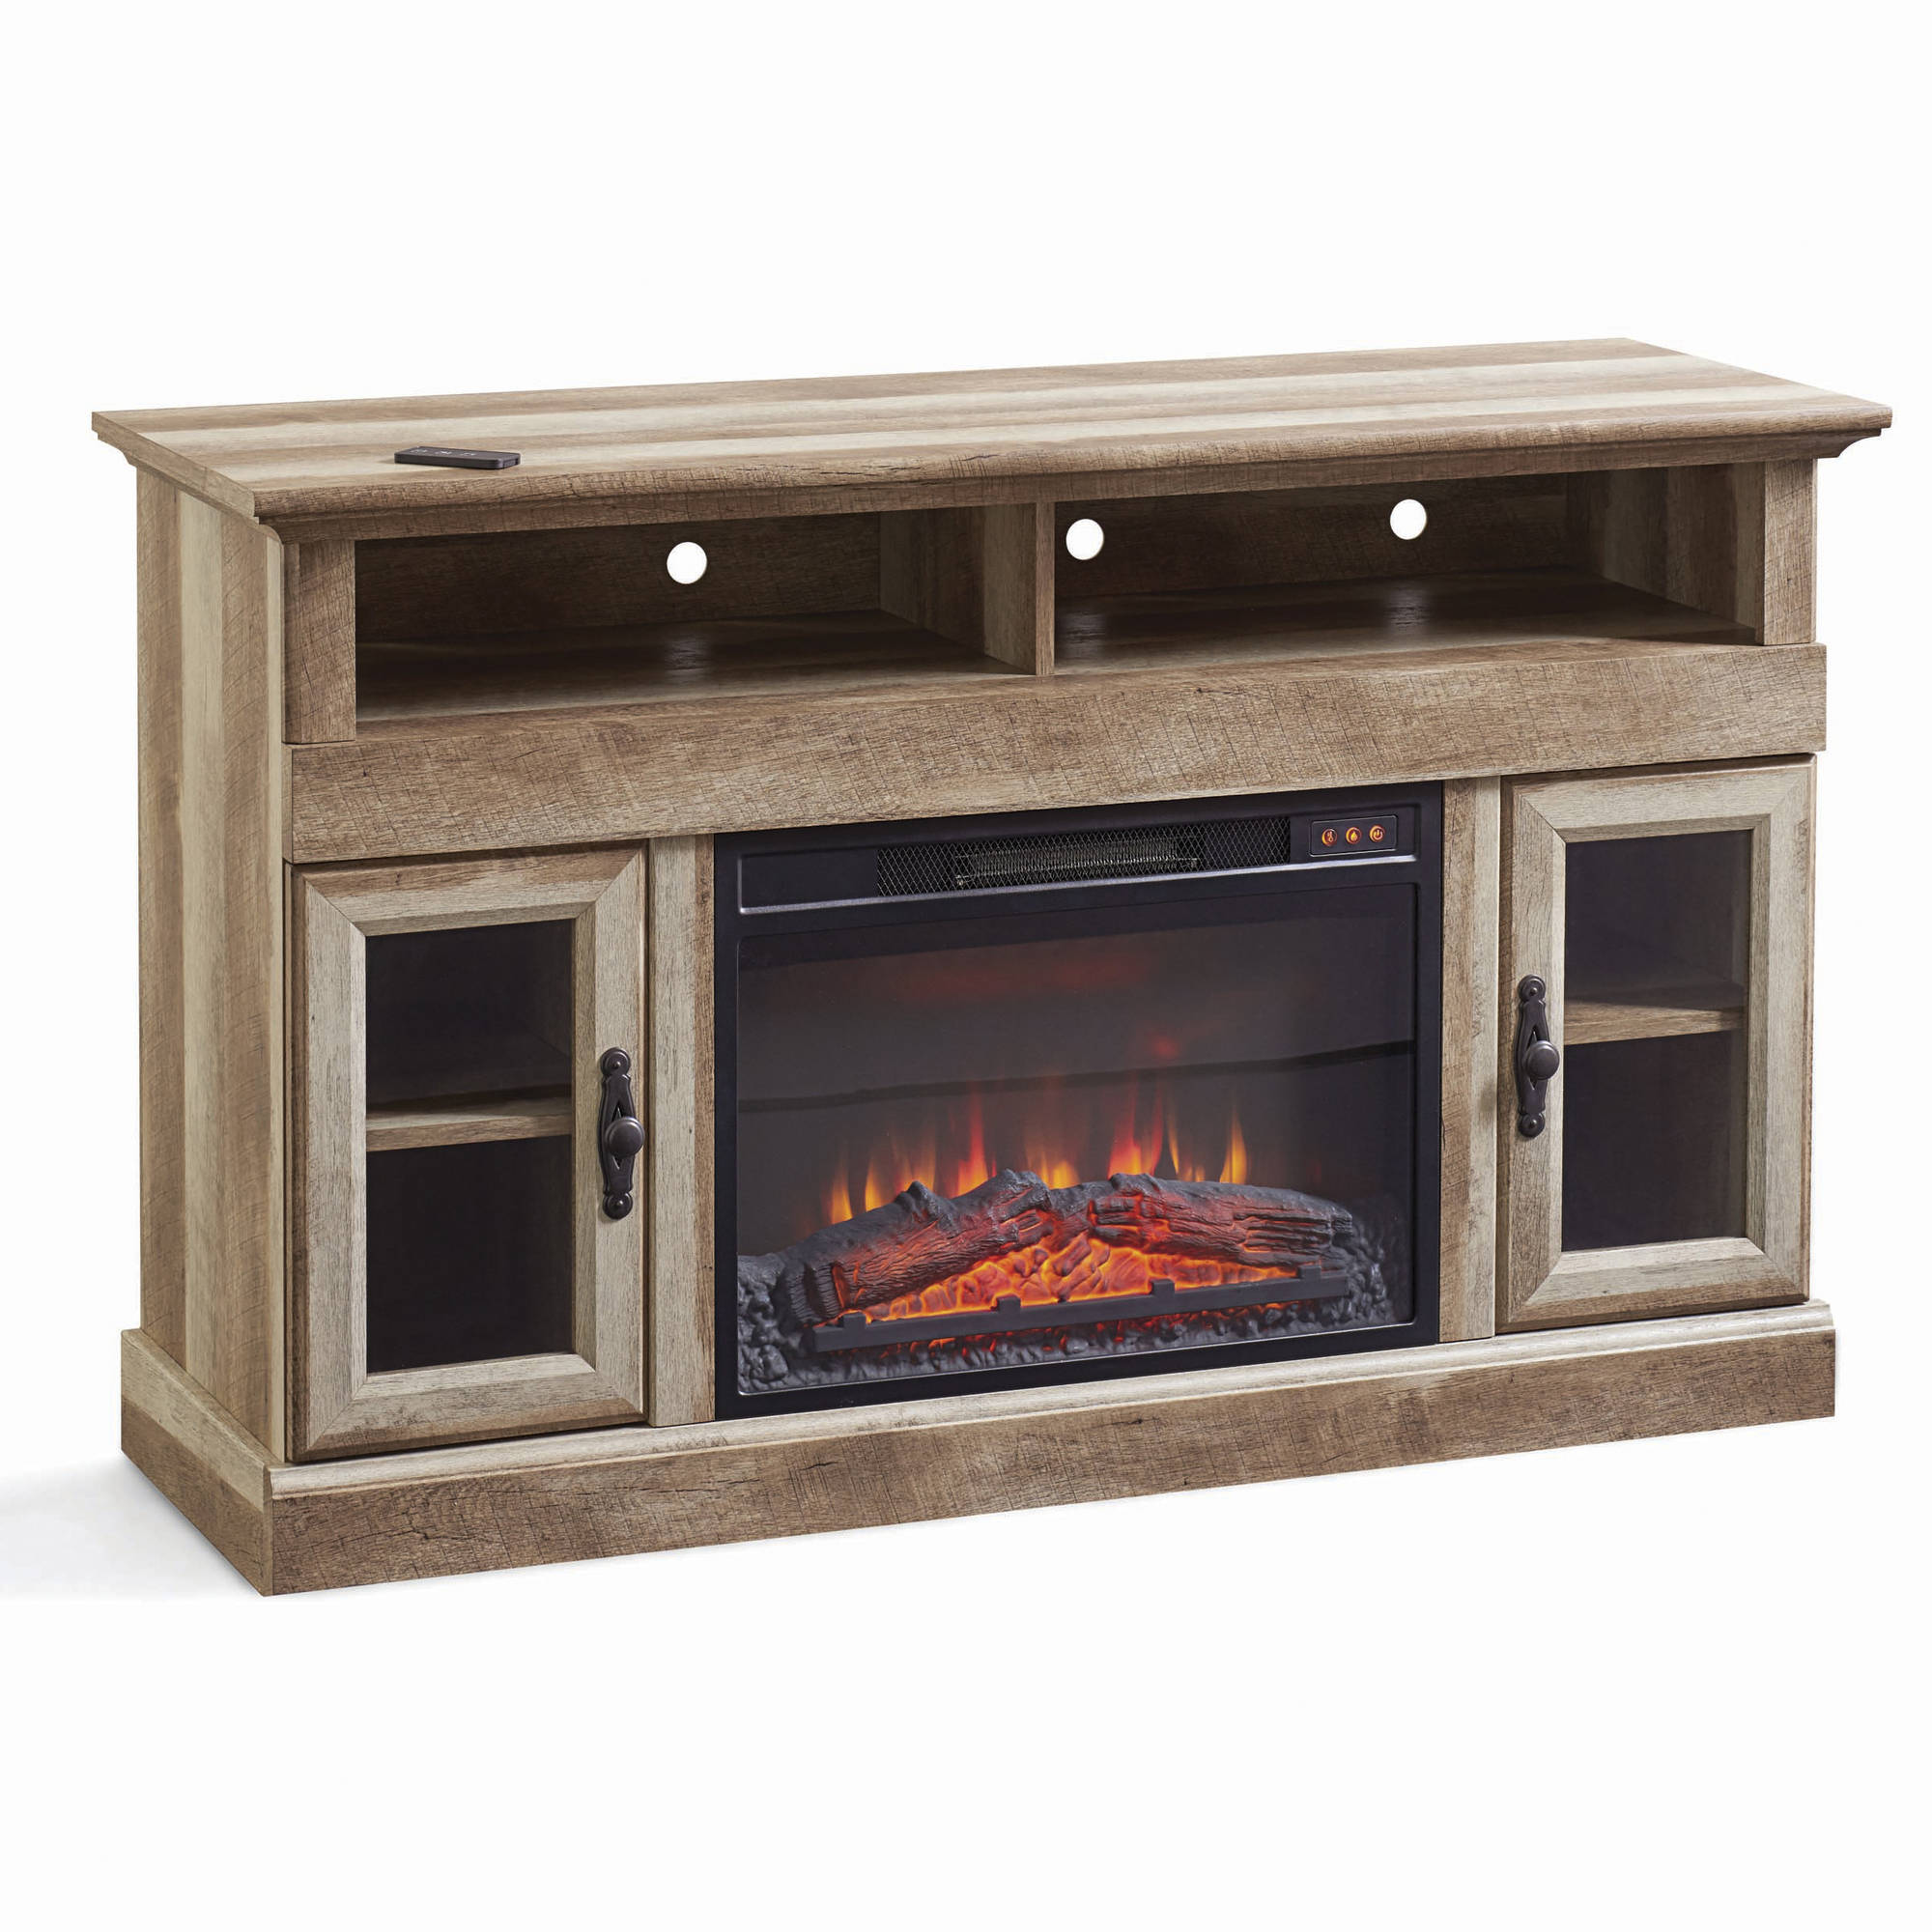 Better Homes And Gardens Crossmill Fireplace Media Console, Weathered  Finish   Walmart.com  Fireplace Media Stand